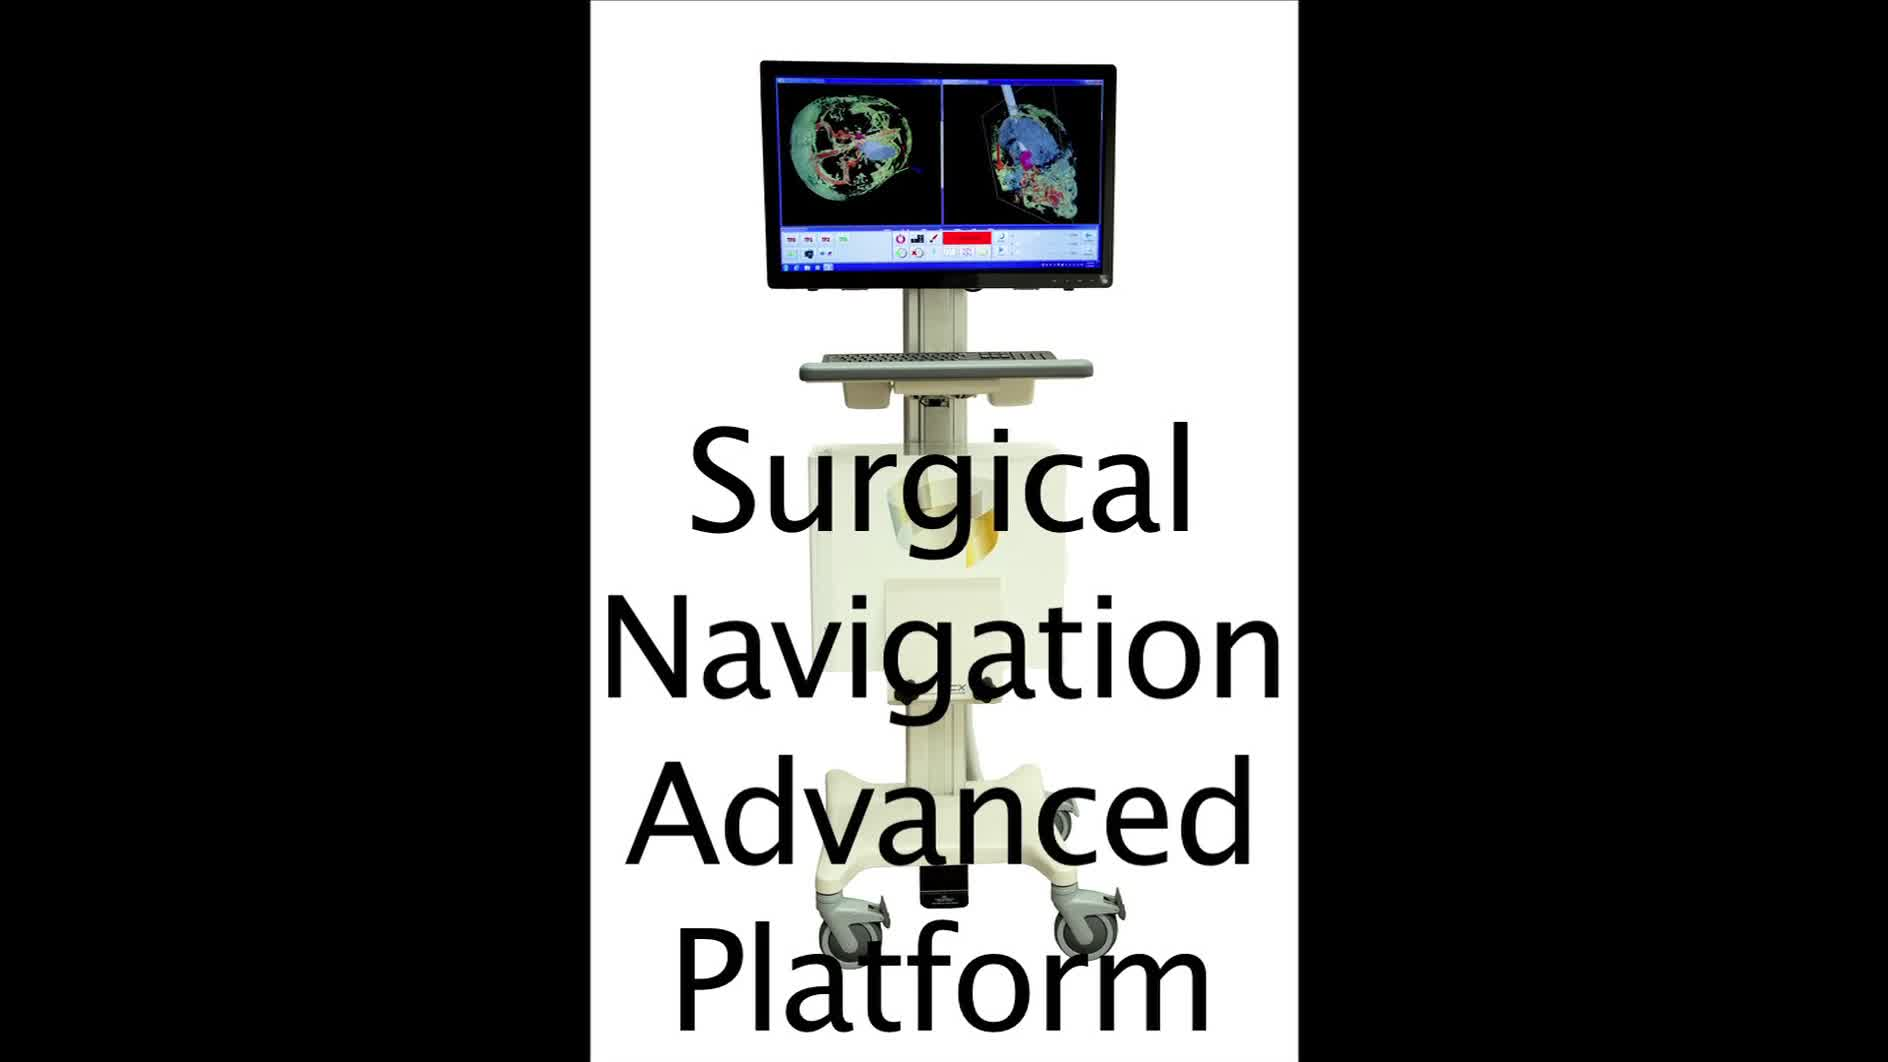 "Surgical Theater's Surgical Navigation Advanced Platform (SNAP) ""The Next Frontier of the Operating Room"" (The SNAP is pending 510k clearance and is currently being utilized under IRB approval)"